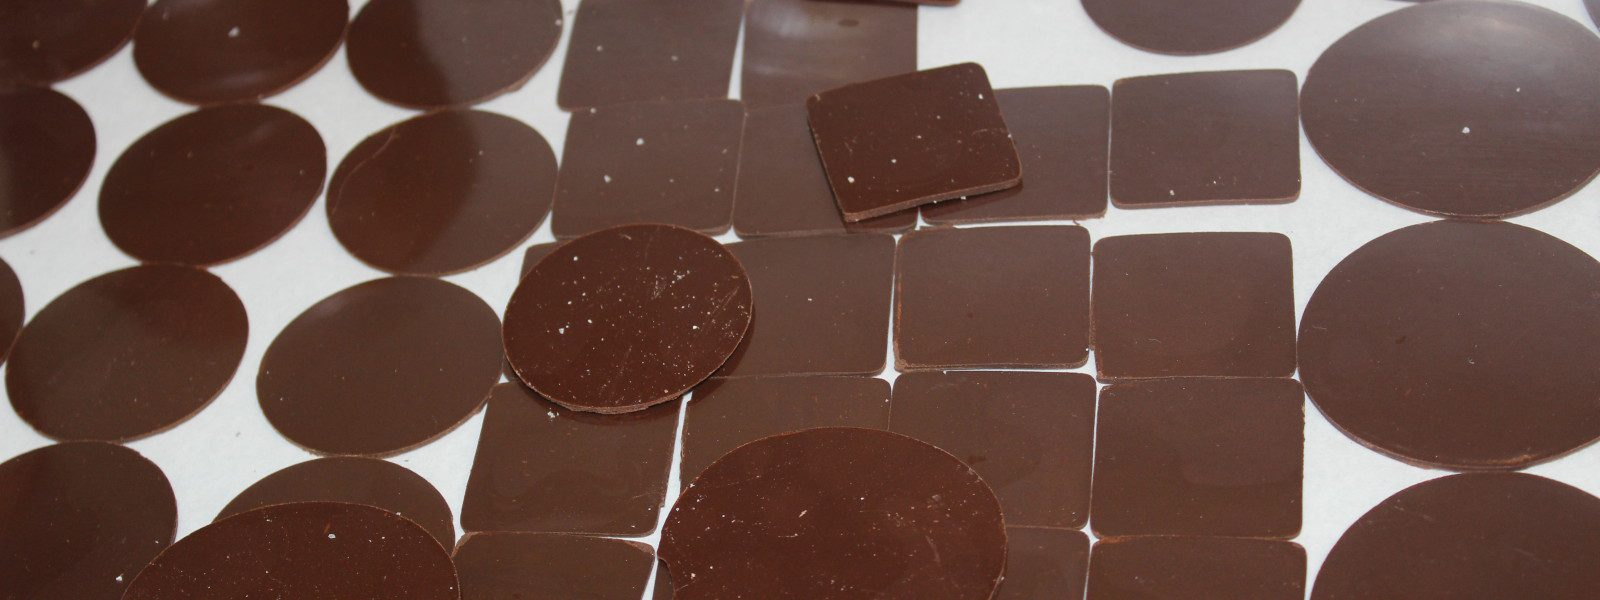 Tempered chocolate squares and discs.